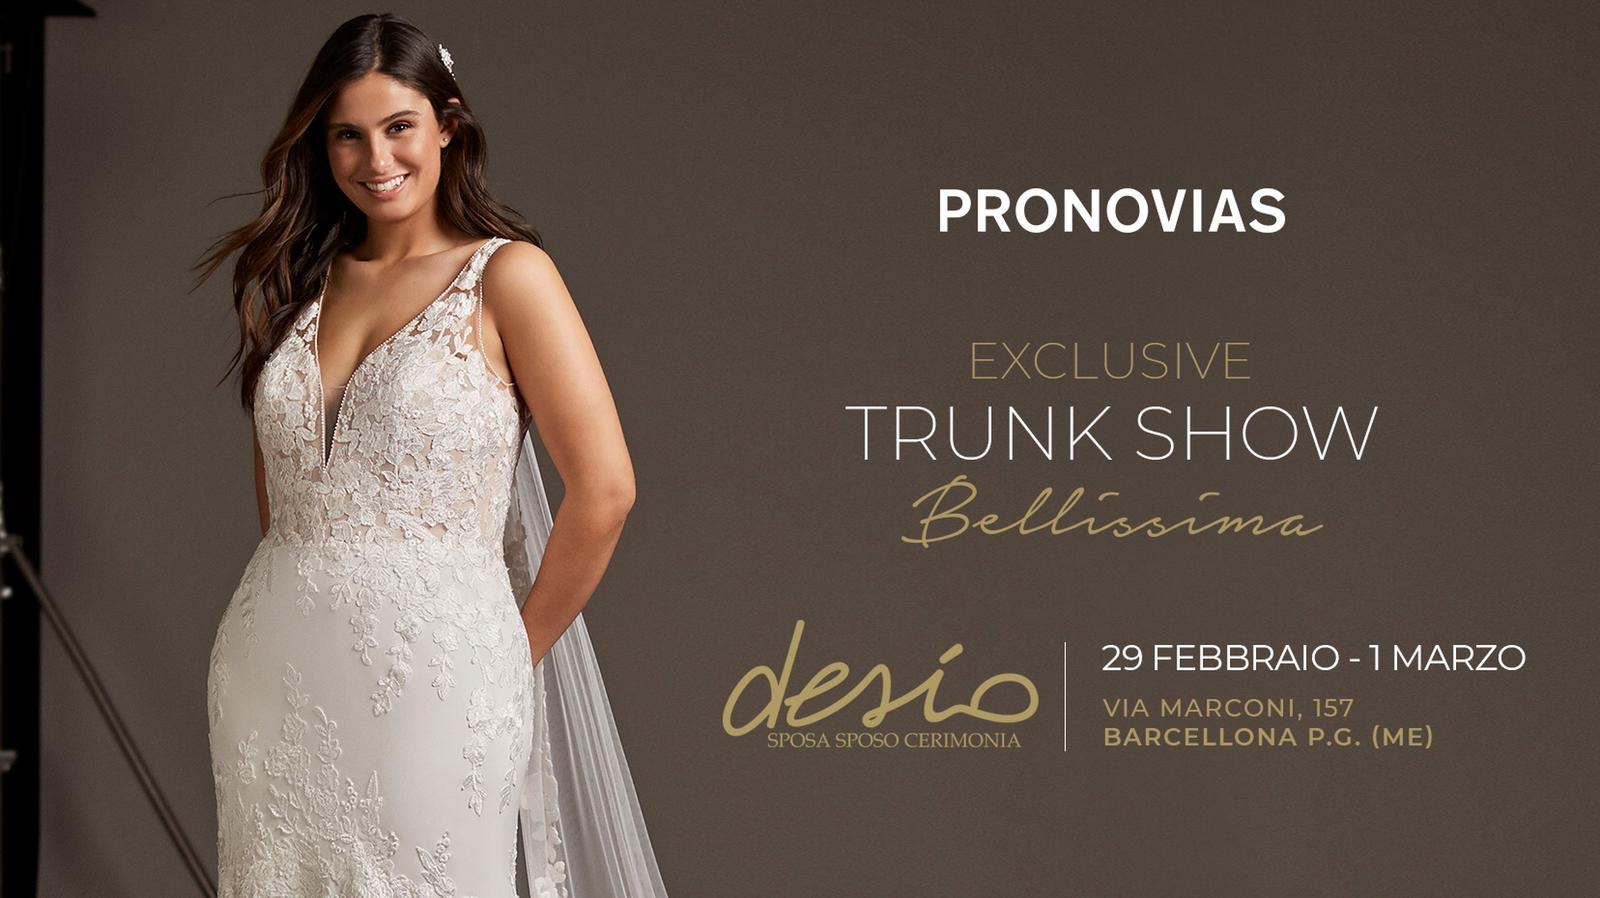 Trunk show bellissima